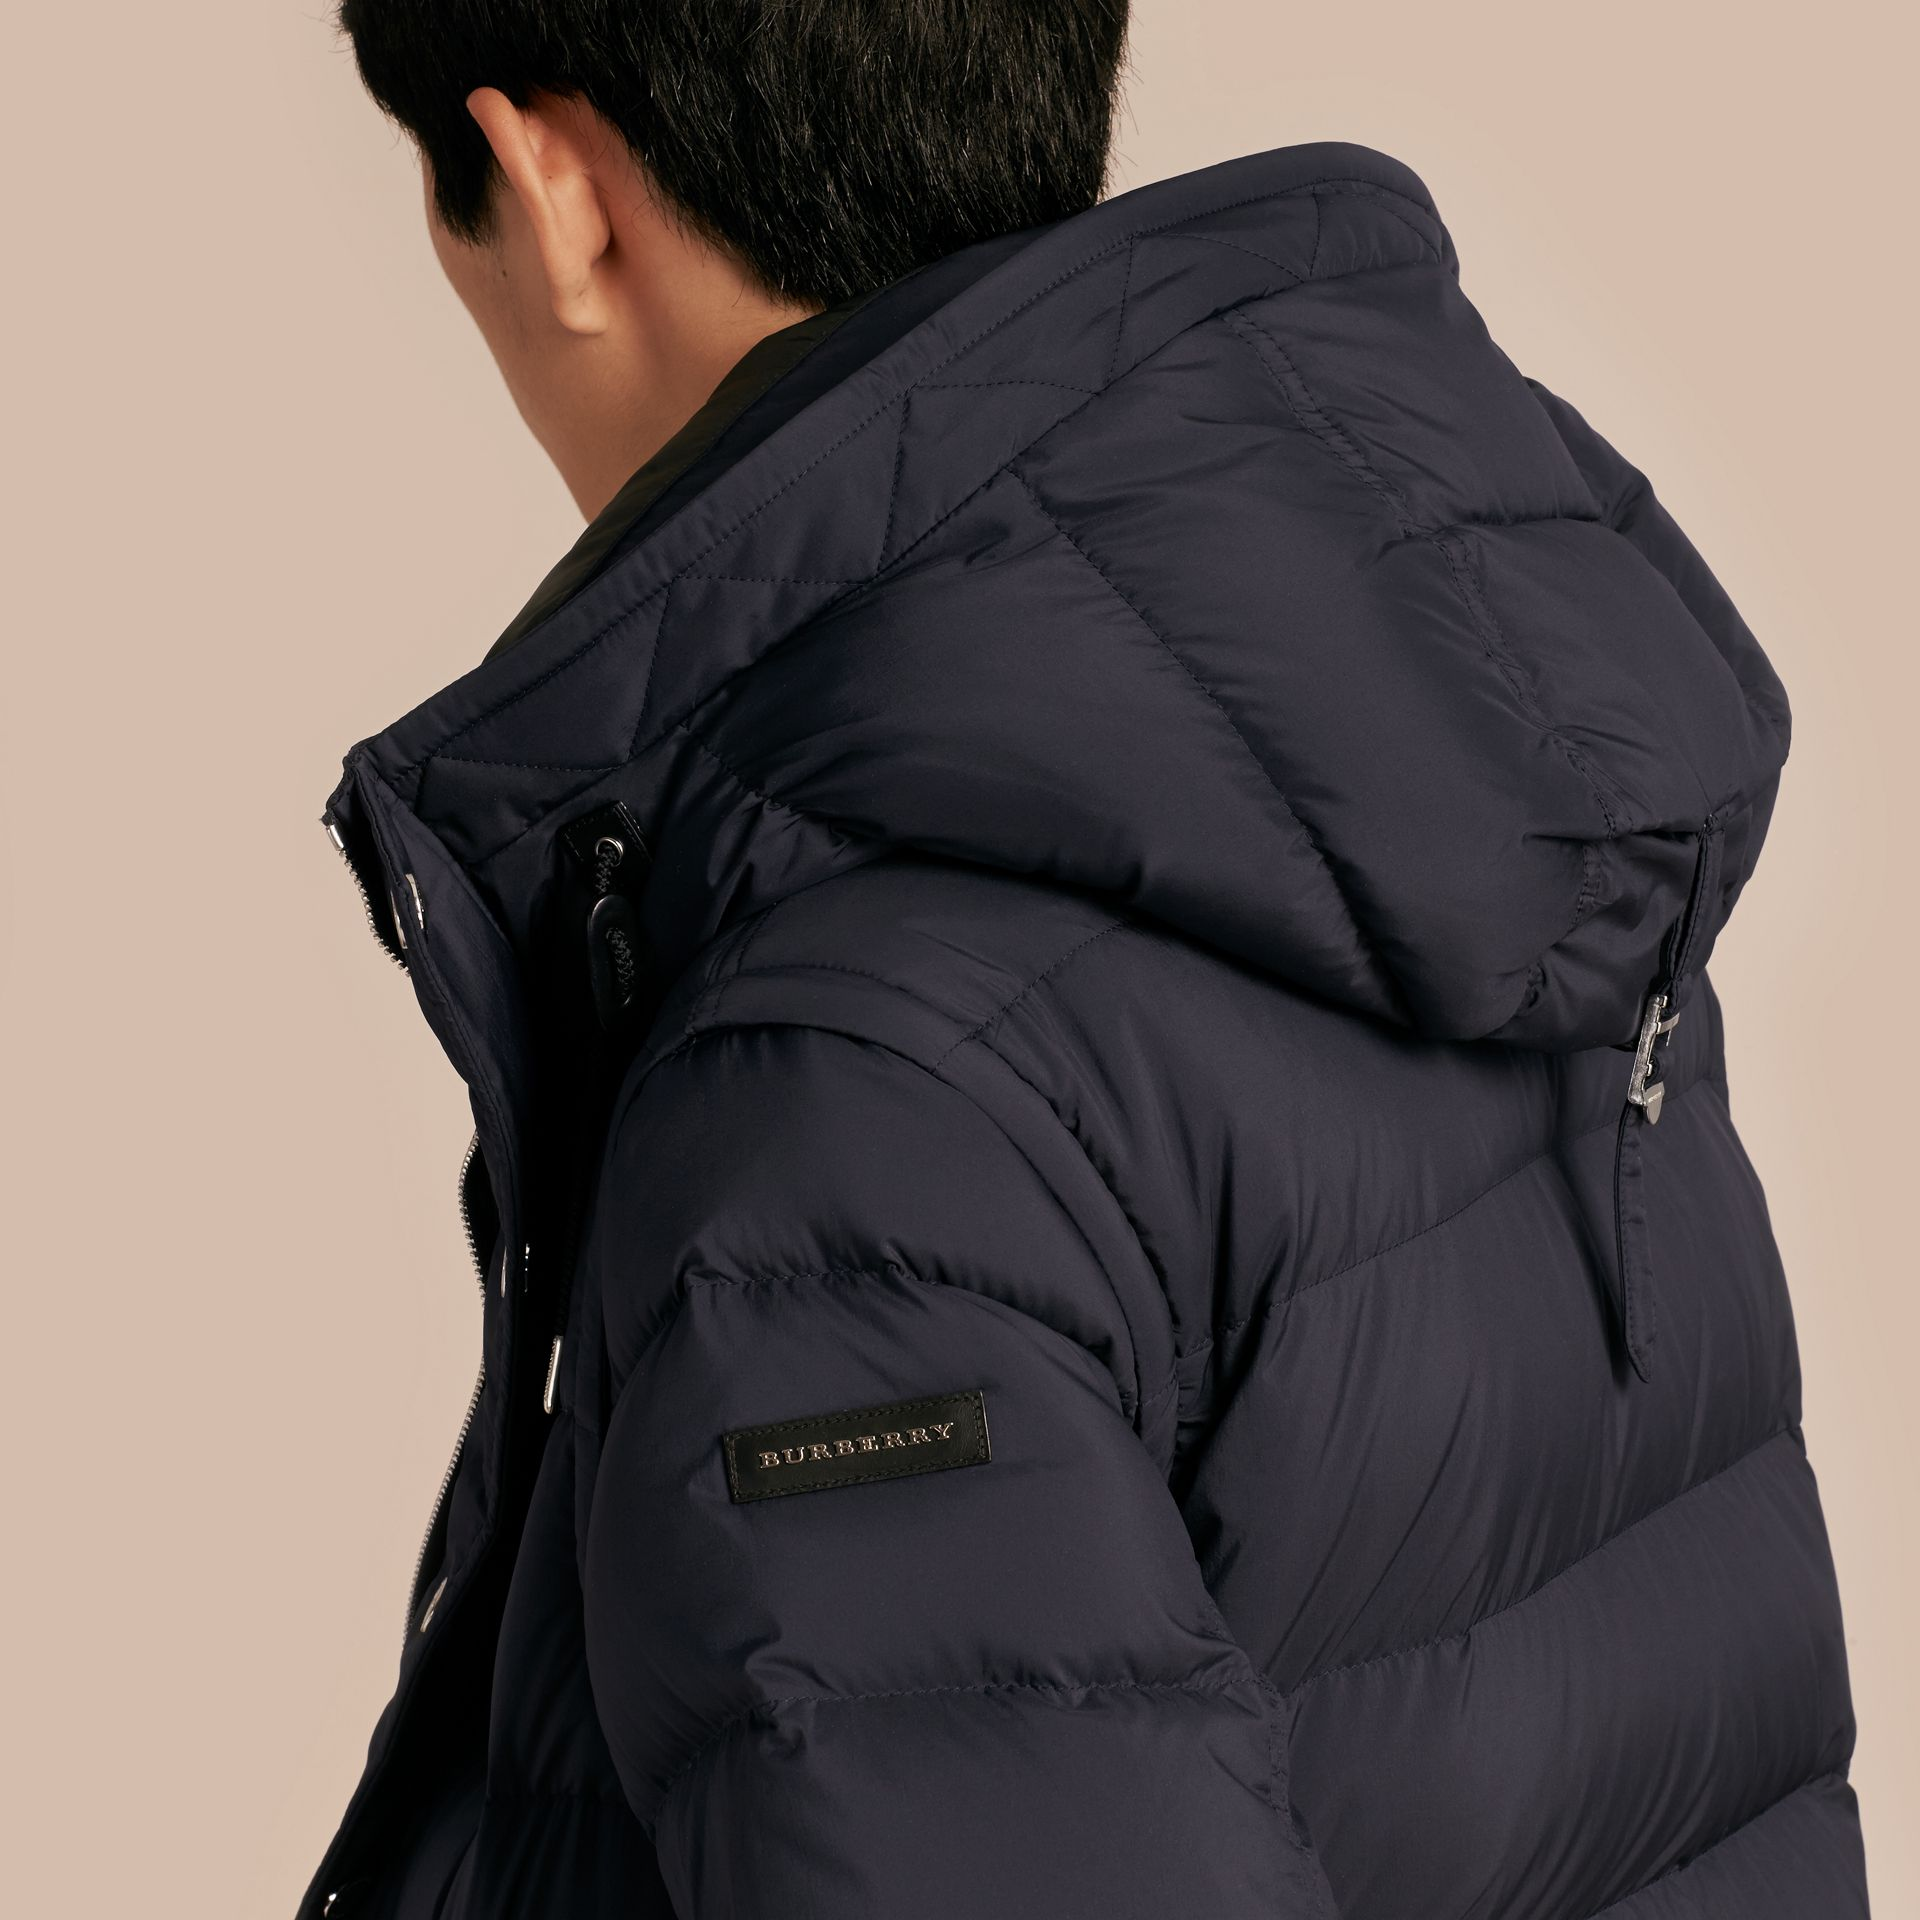 Navy Down-filled Hooded Jacket with Detachable Sleeves Navy - gallery image 5